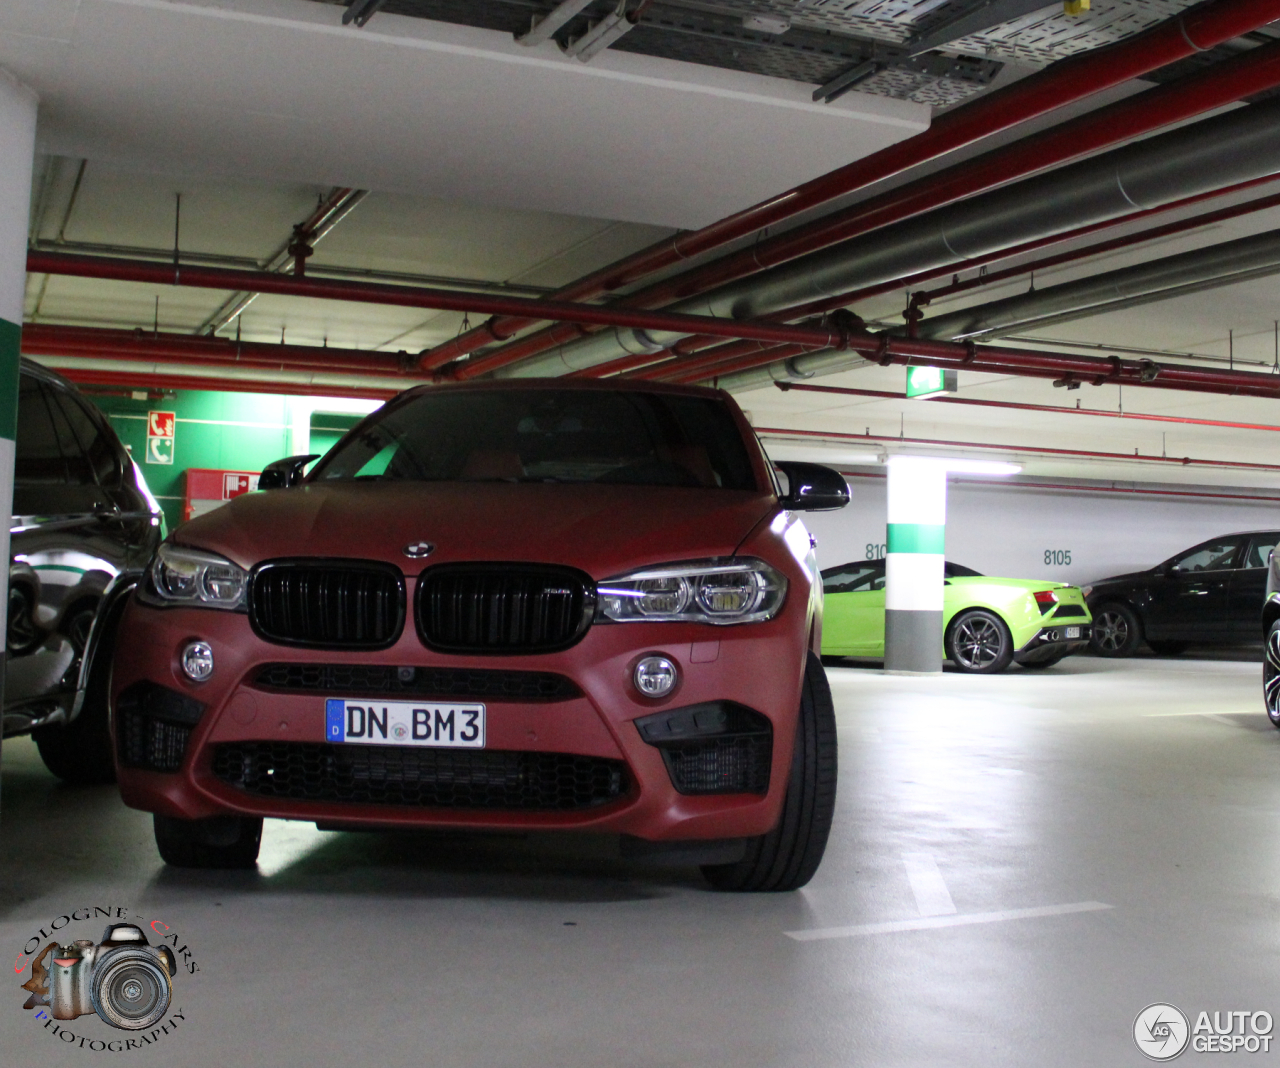 Bmw X6 Price In Germany: BMW X6 M F86